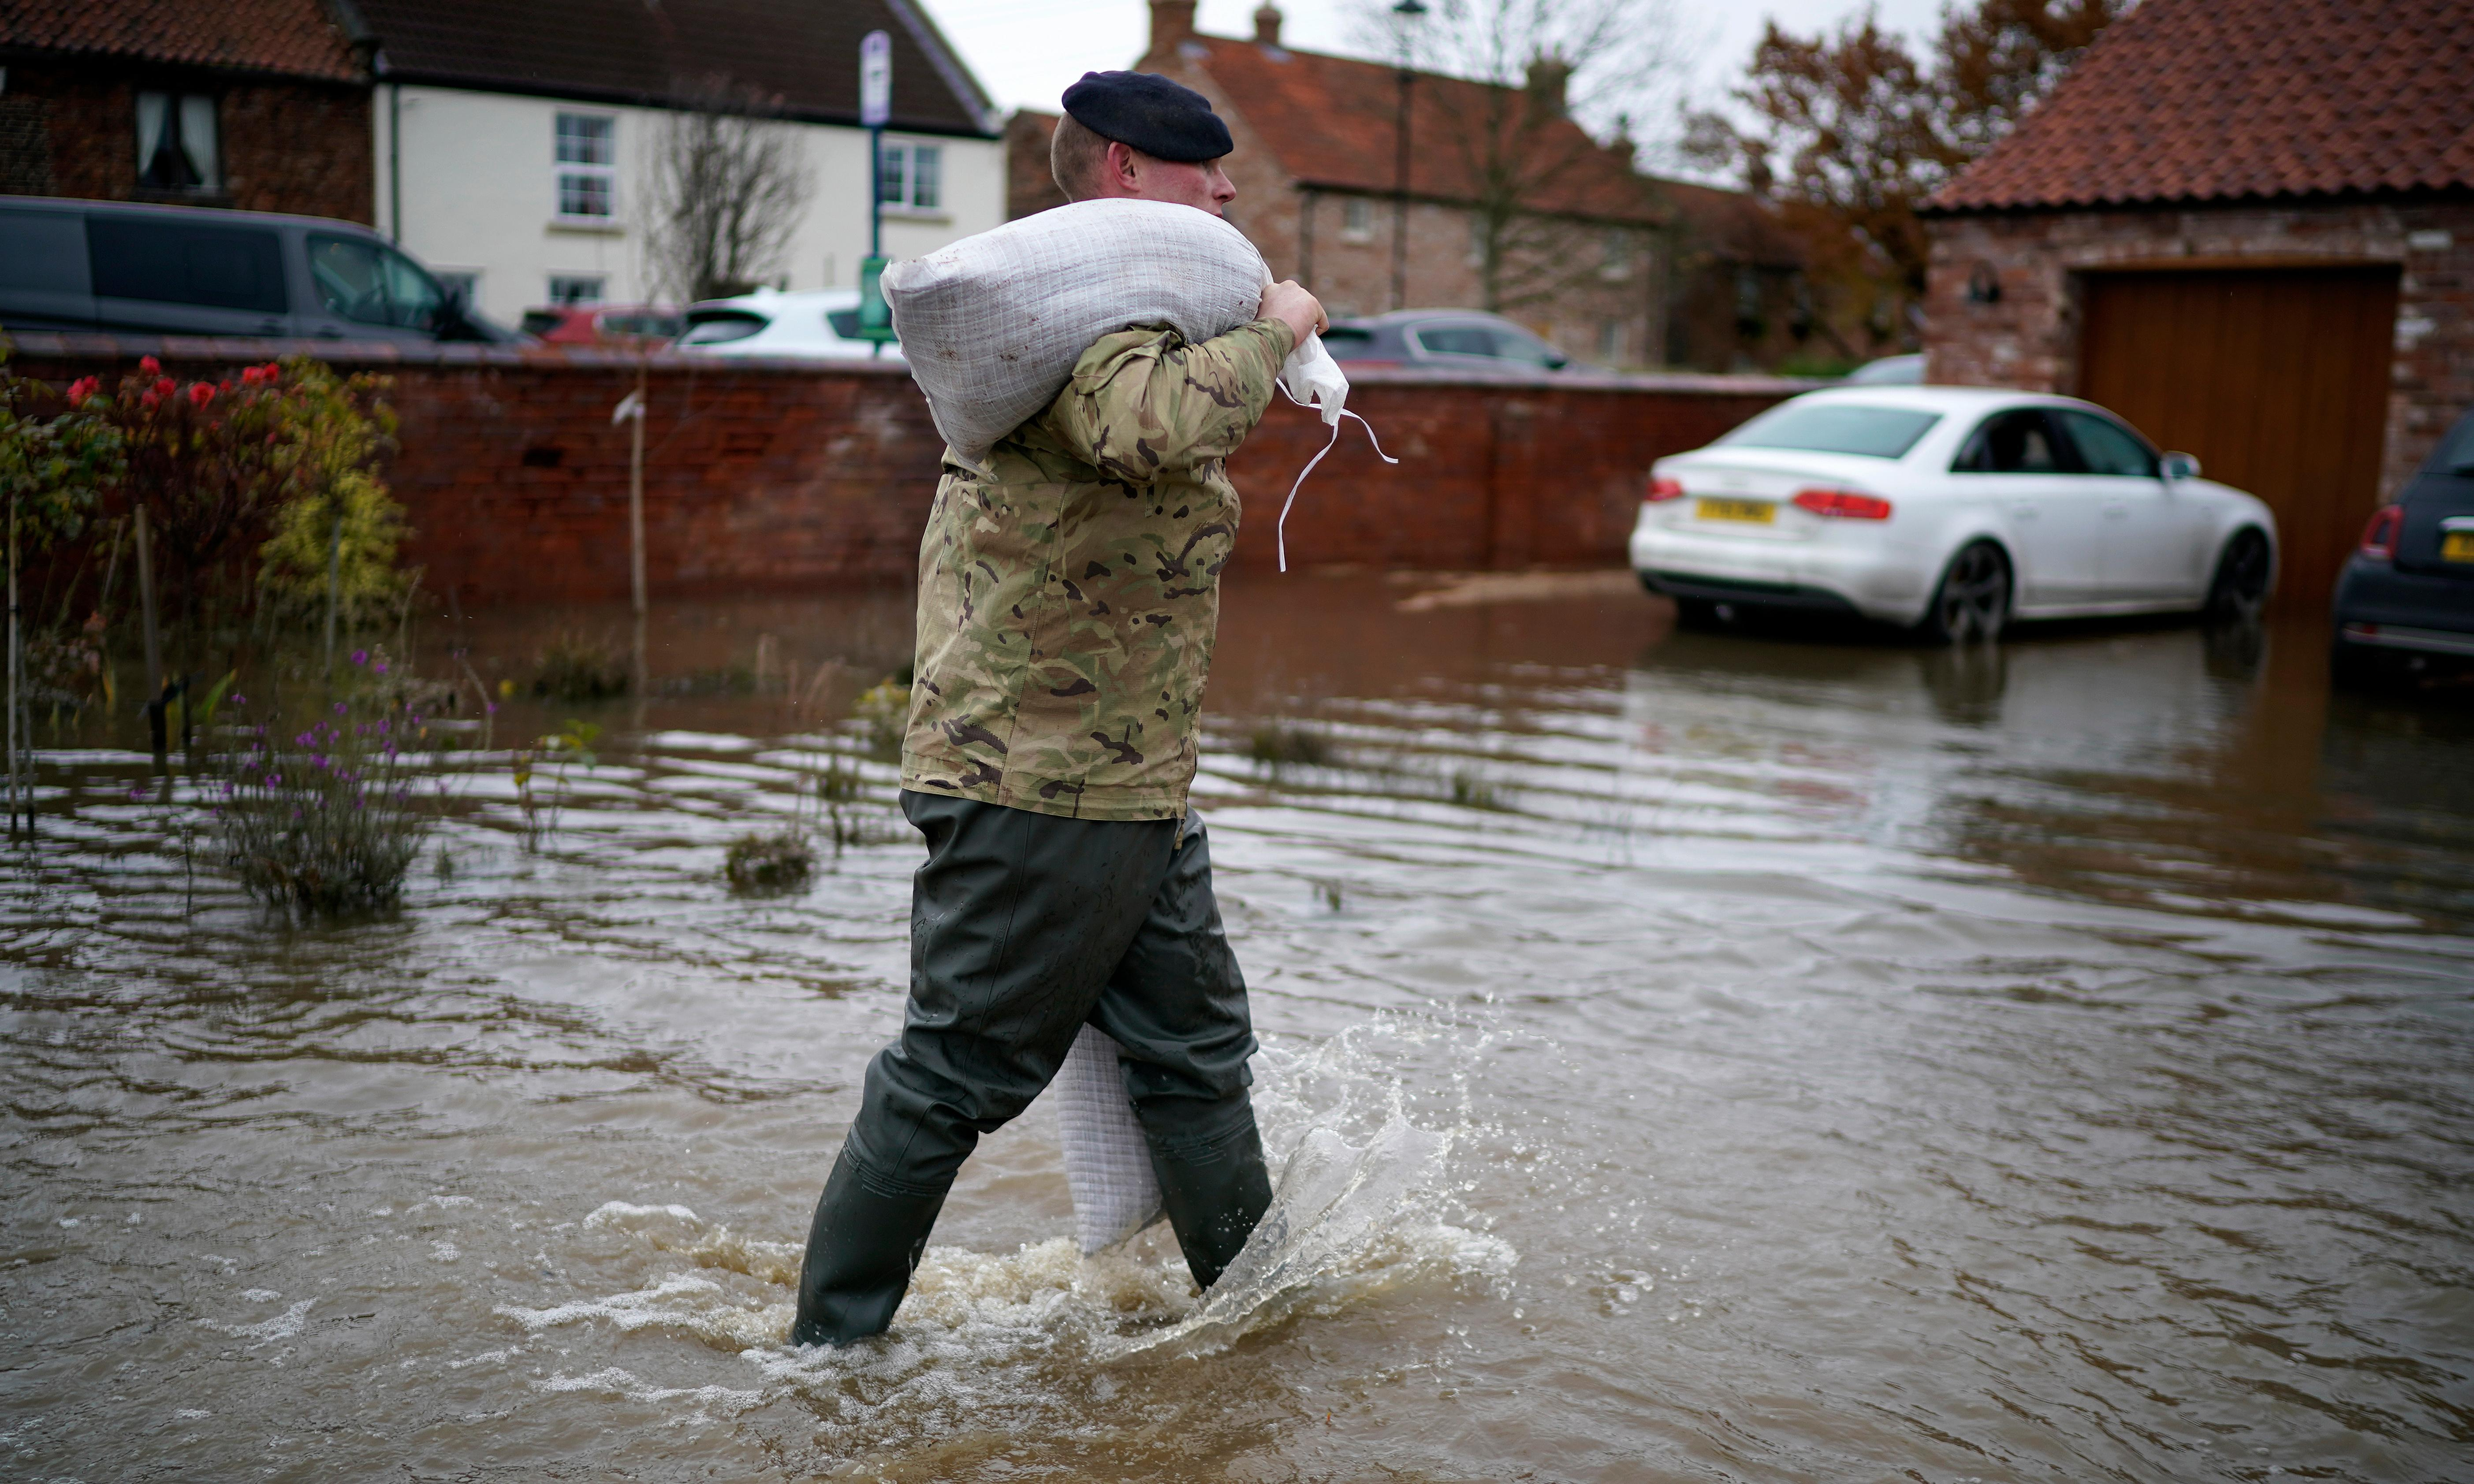 UK flood victims criticise government for 'belated response'